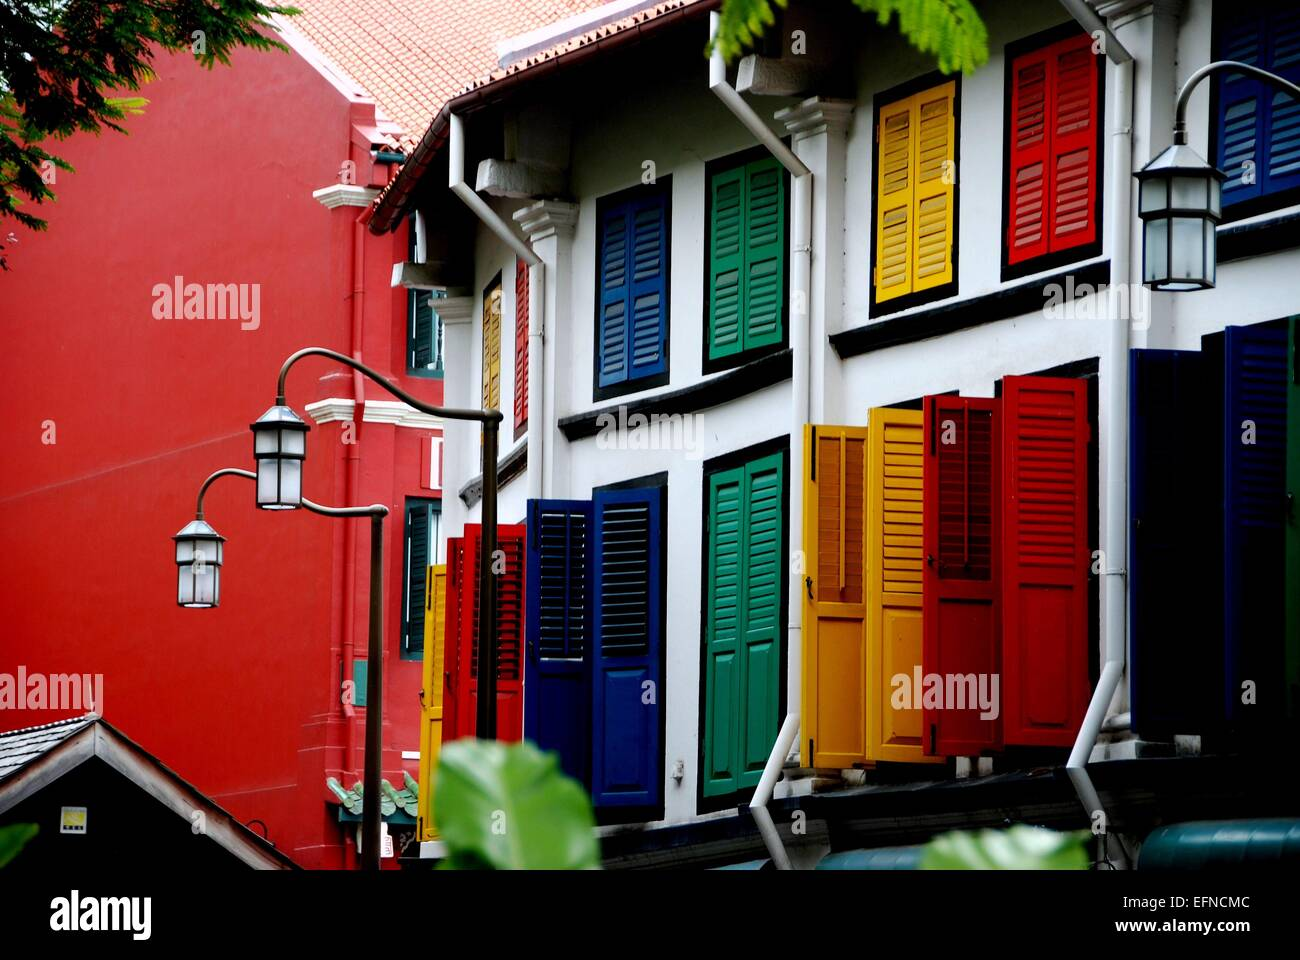 Singapore: Restored late 19th century former shop houses on Amoy Street with multi-coloured wooden shutters in Chinatown - Stock Image